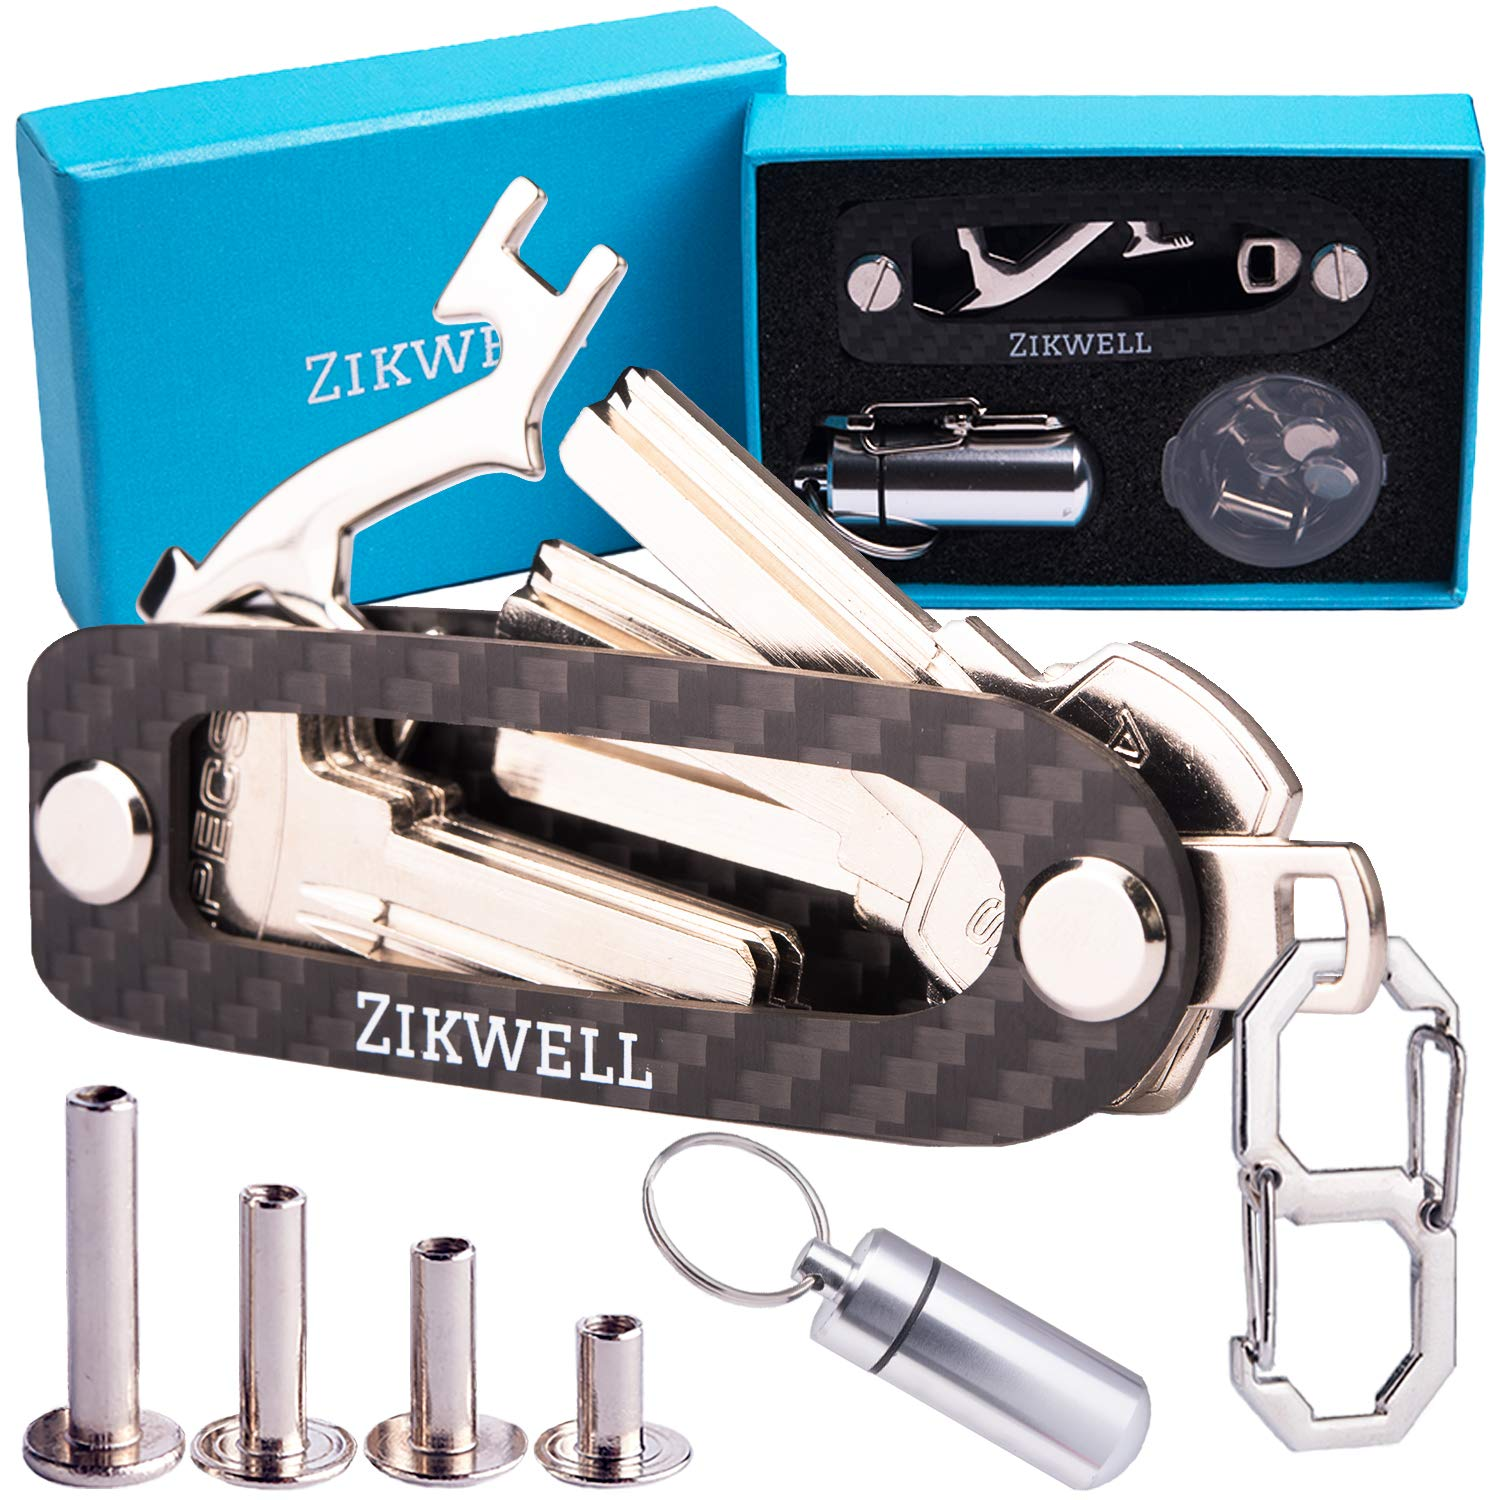 Smart Key Holder Organizer | Compact Keychain in Your Pocket - Made of Carbon Fiber - with Multitool, Bottle Opener, Carabiner. up to 14 Keys - Easy Assembly, Great Gift Box by Zikwell